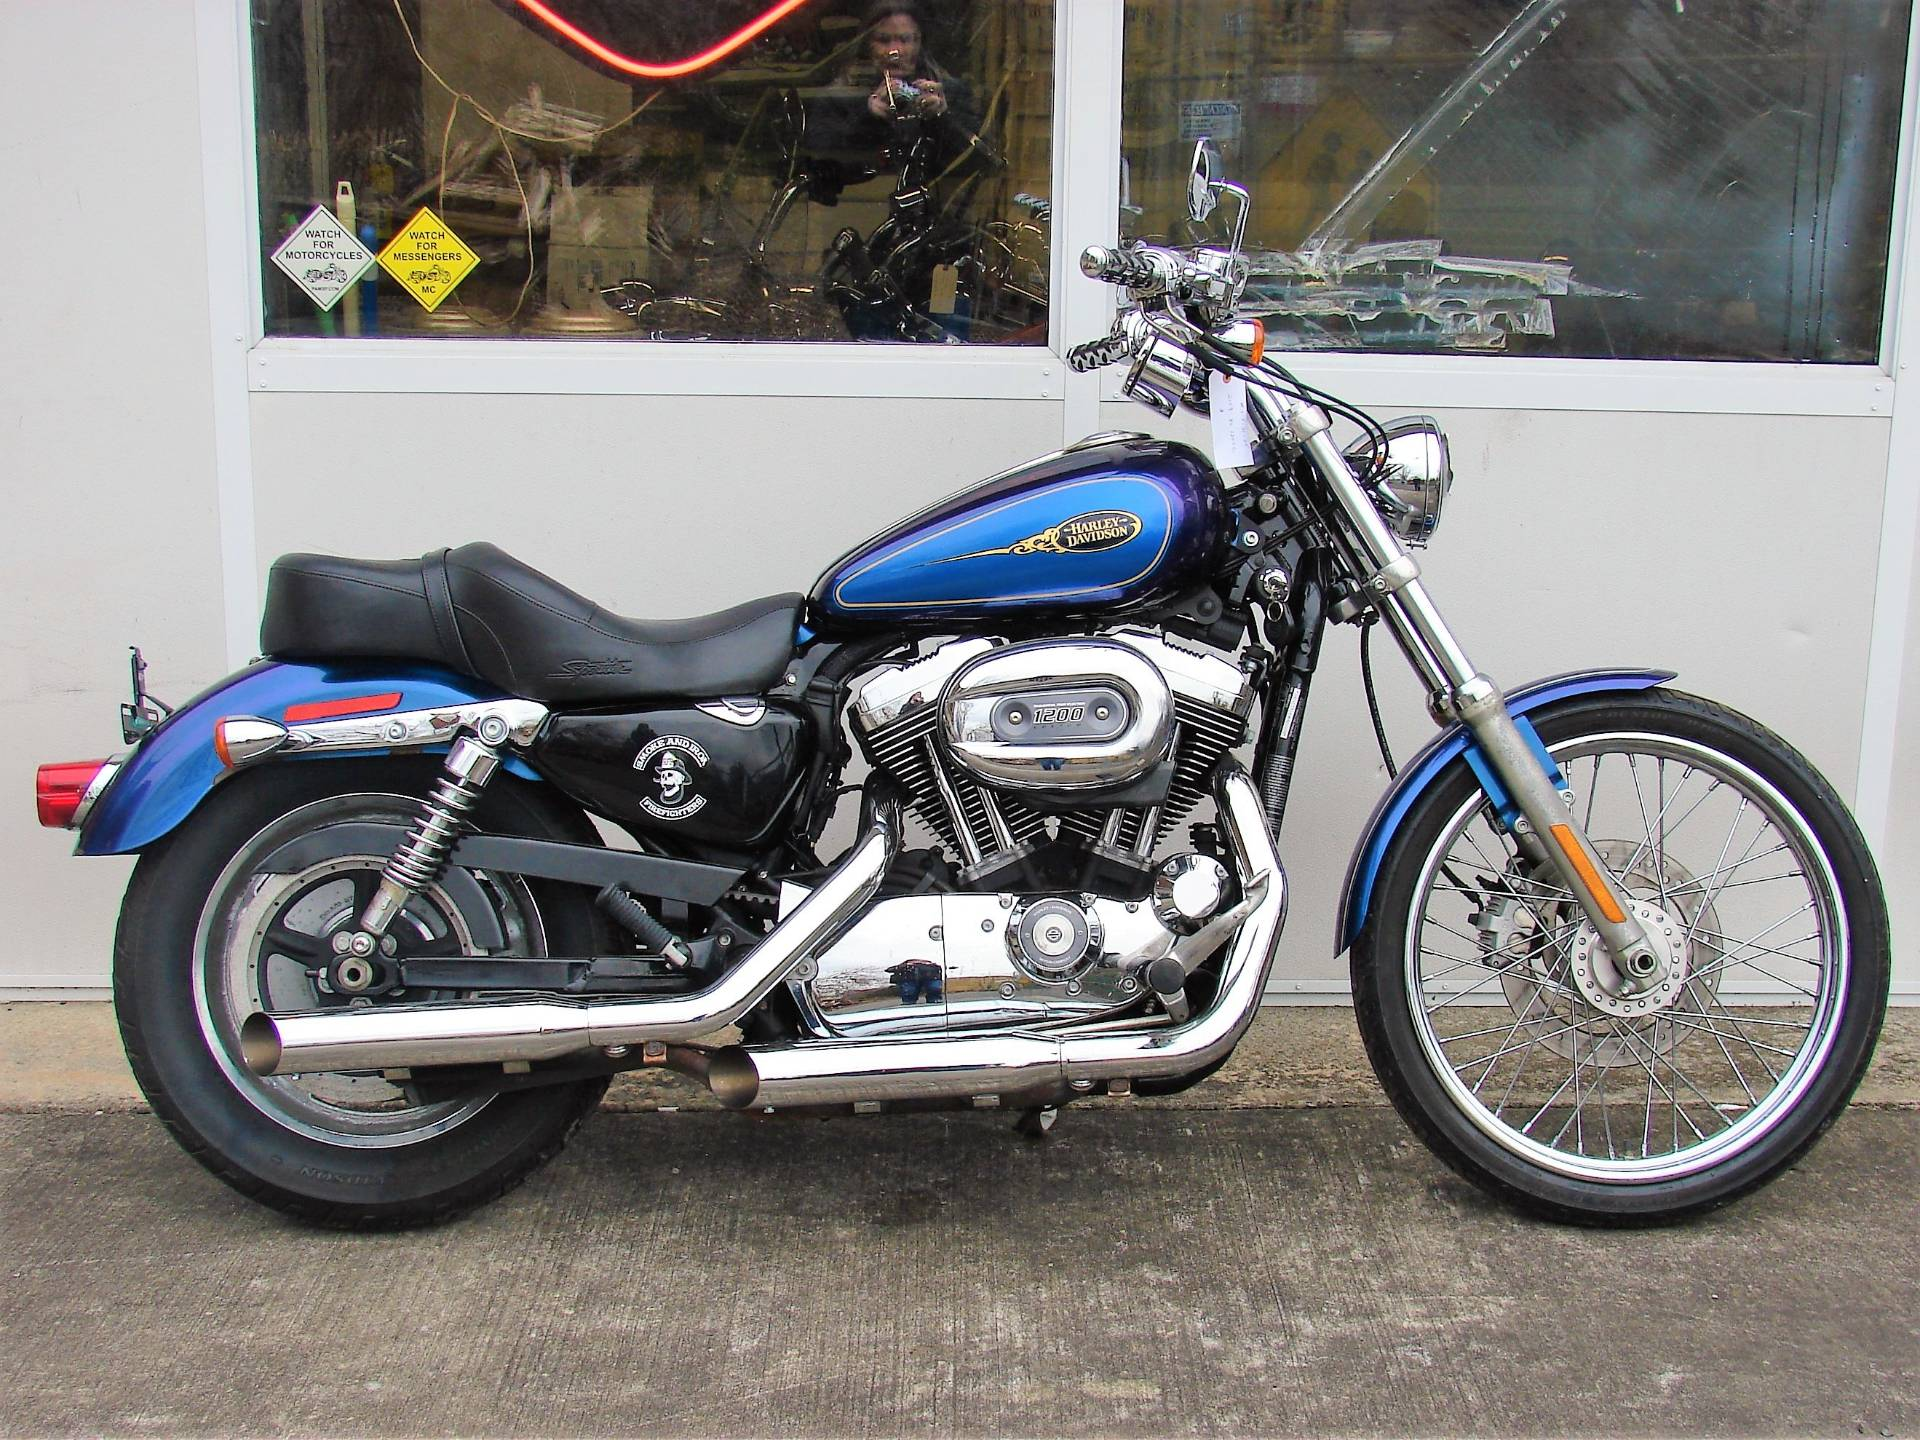 2009 Harley-Davidson XL 1200C Sportster in Williamstown, New Jersey - Photo 12